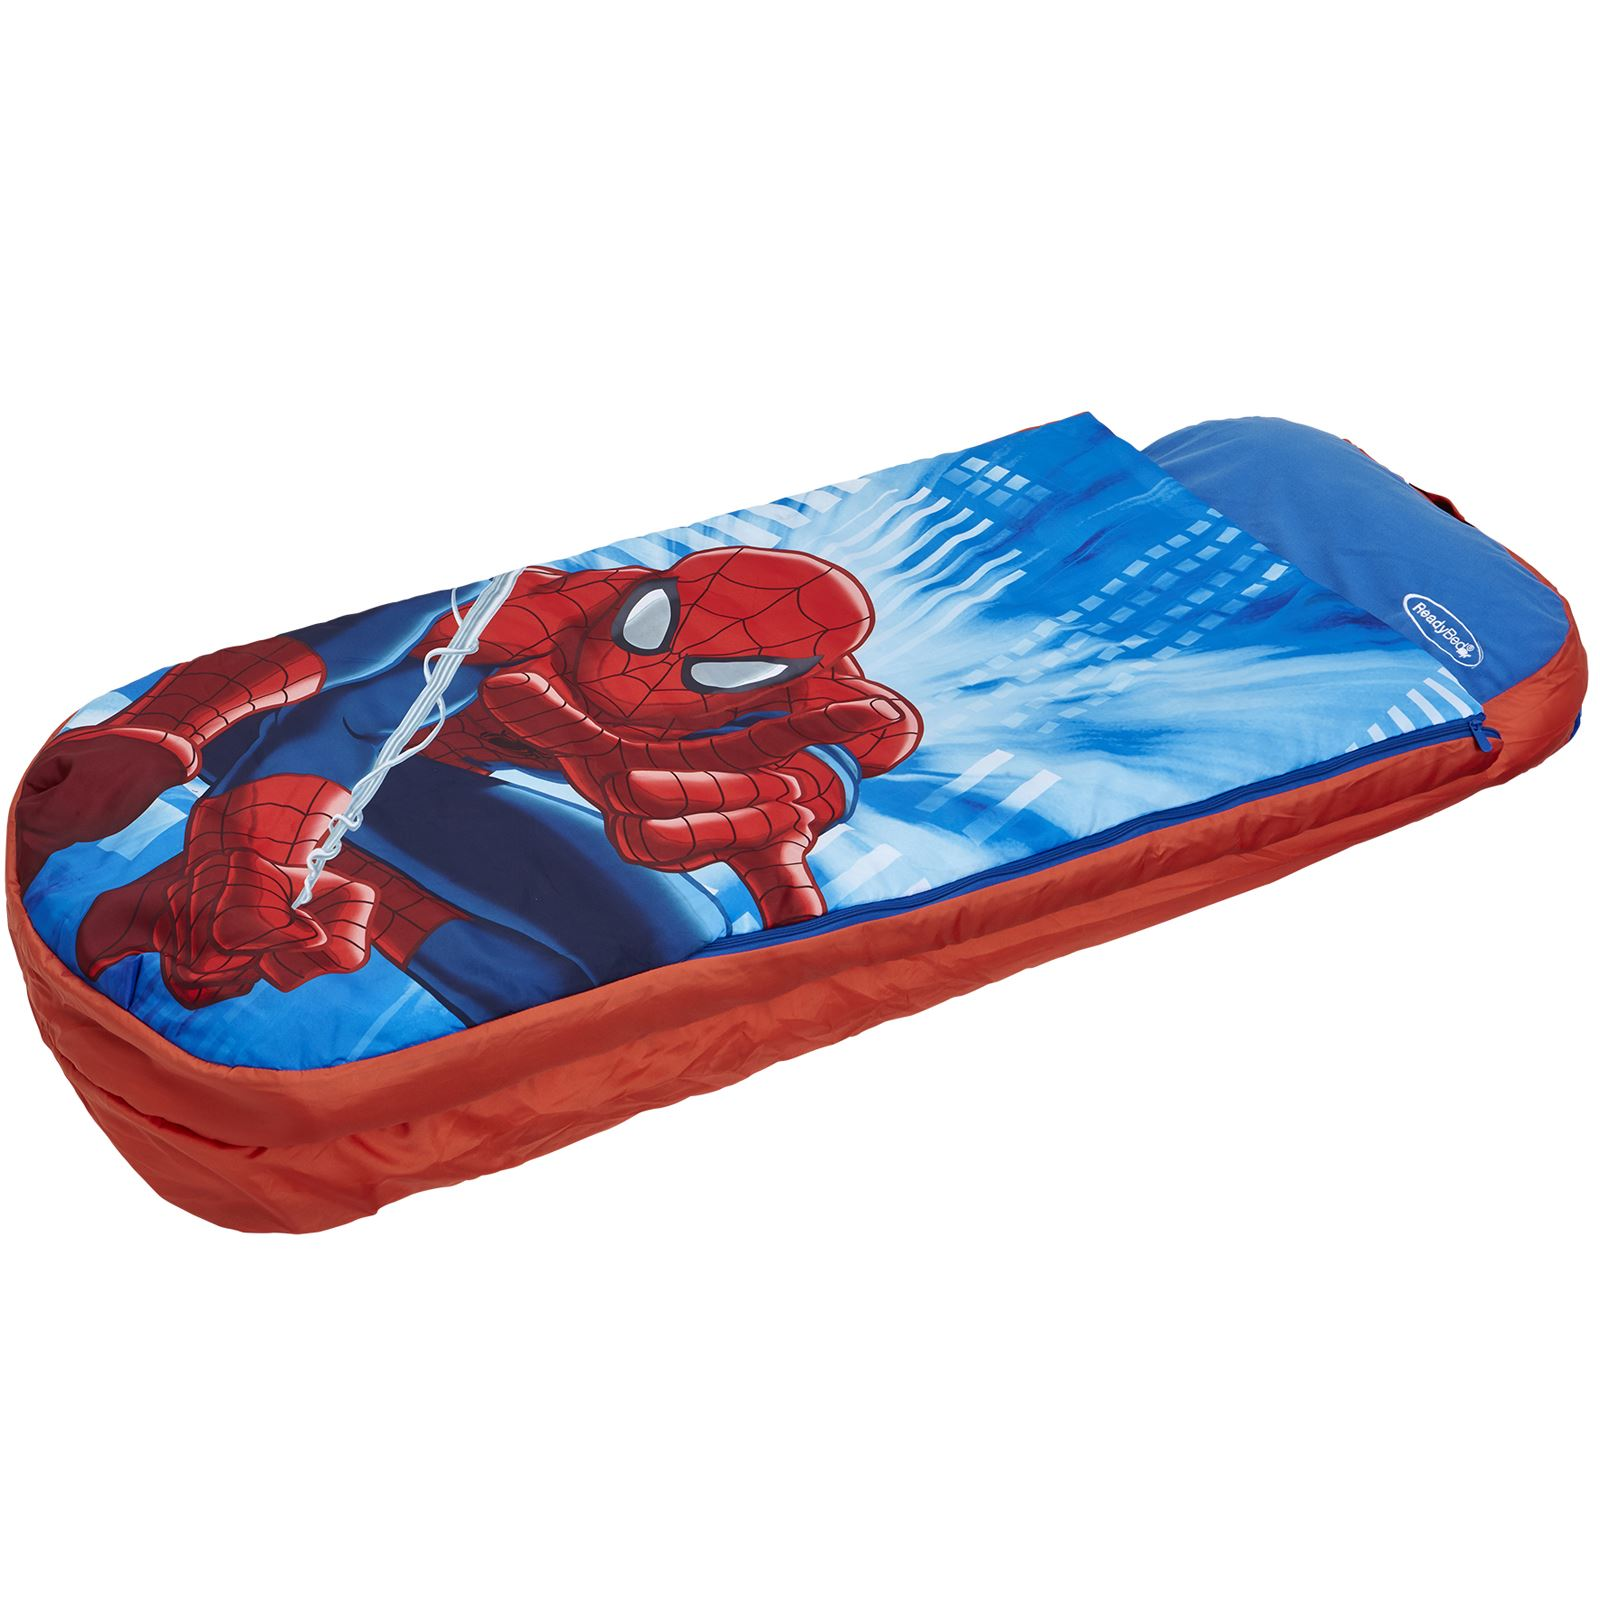 Spiderman Ready Bed Inflatable Sleeping Bag